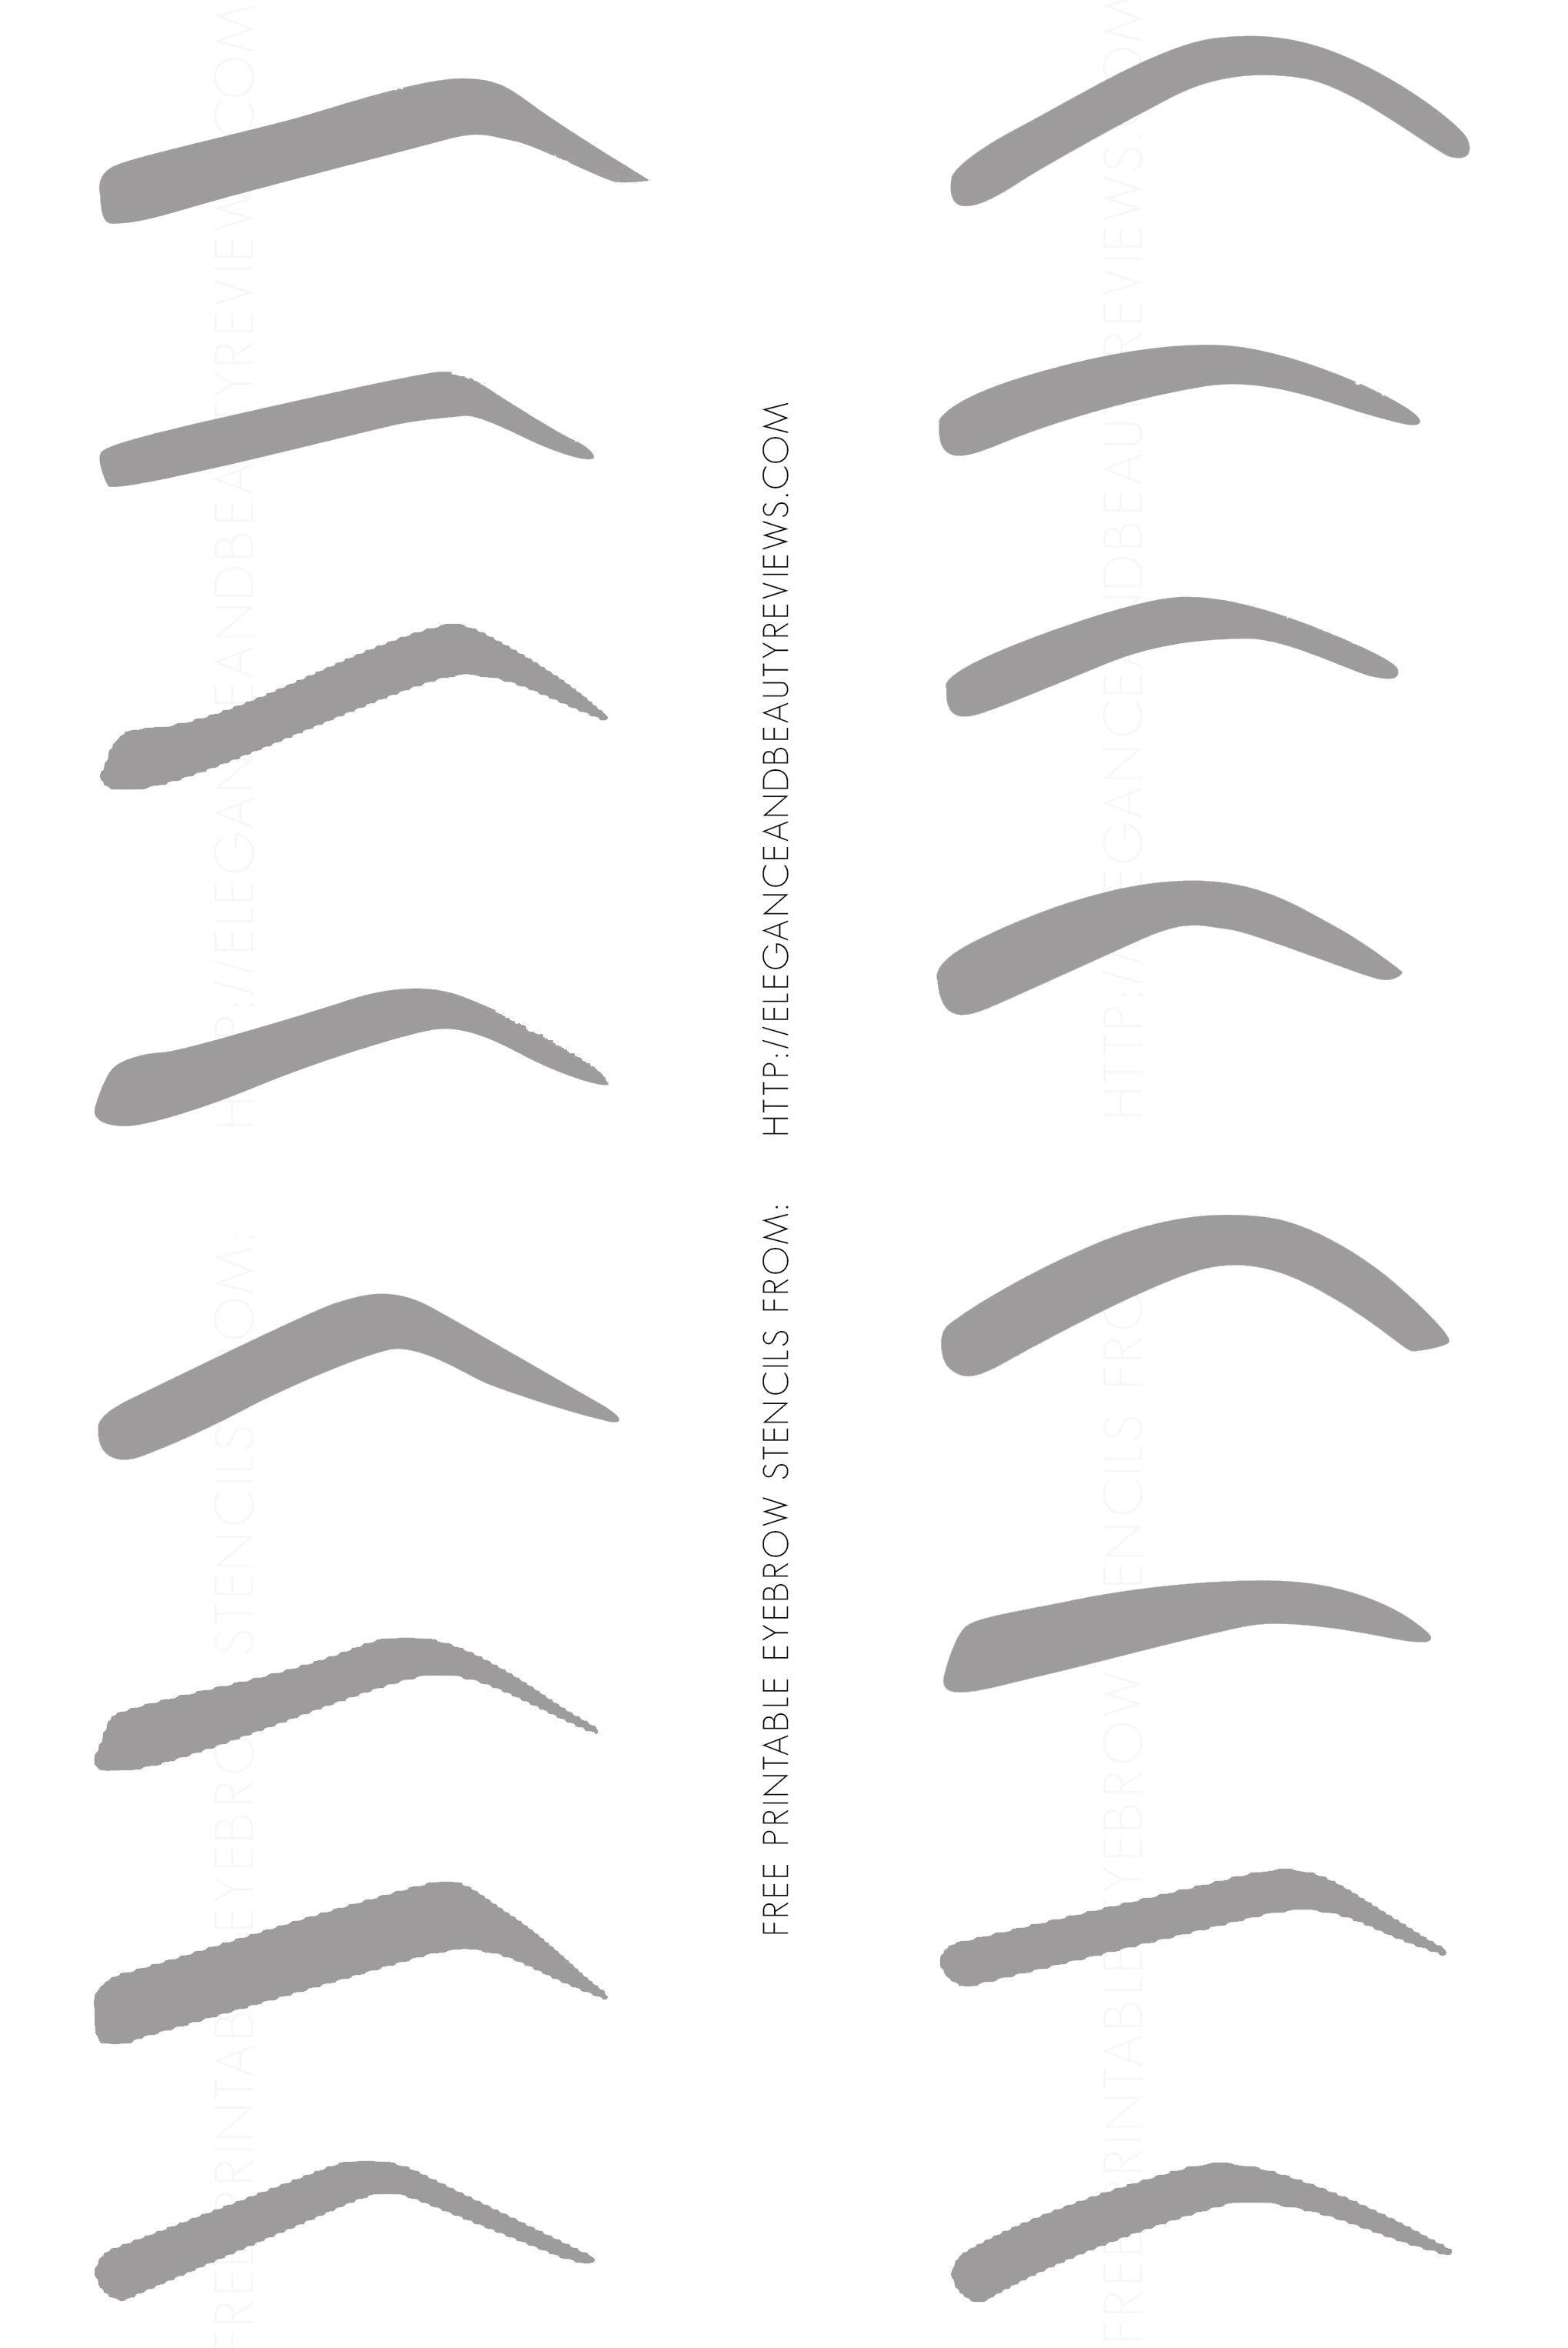 It is an image of Handy Printable Eye Brow Stencils